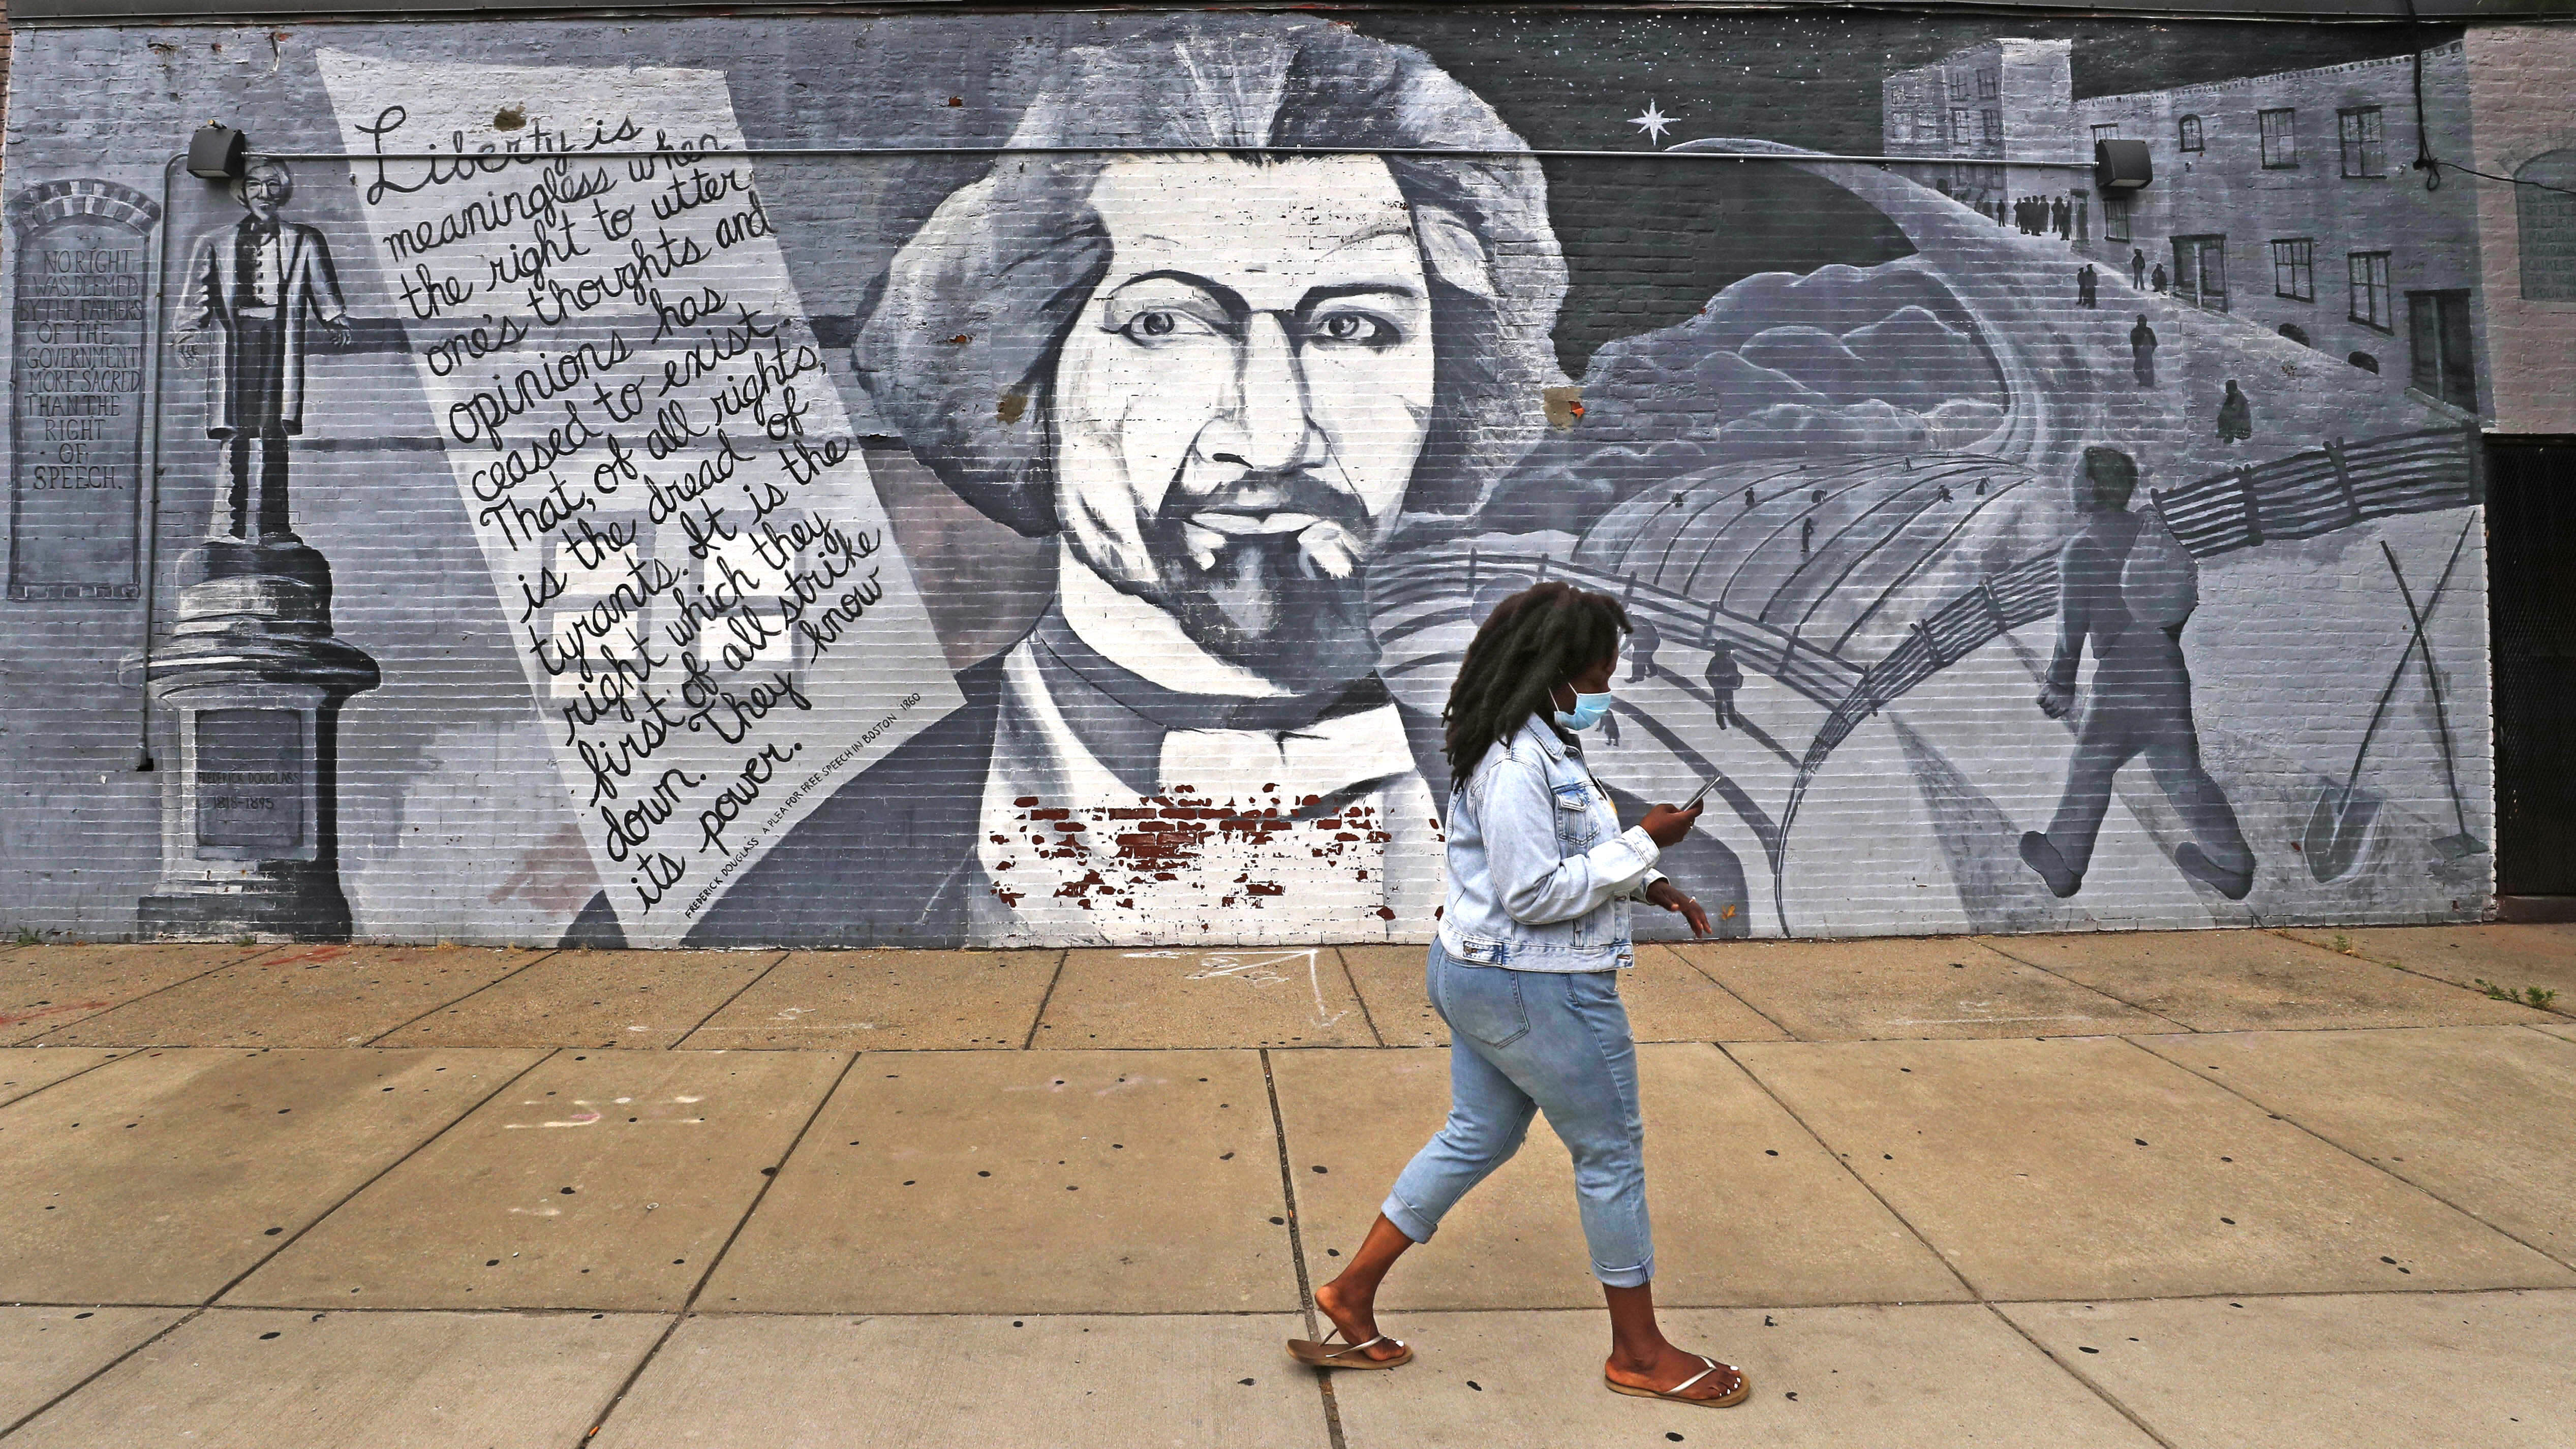 Frederick Douglass statue vandalized in Rochester park